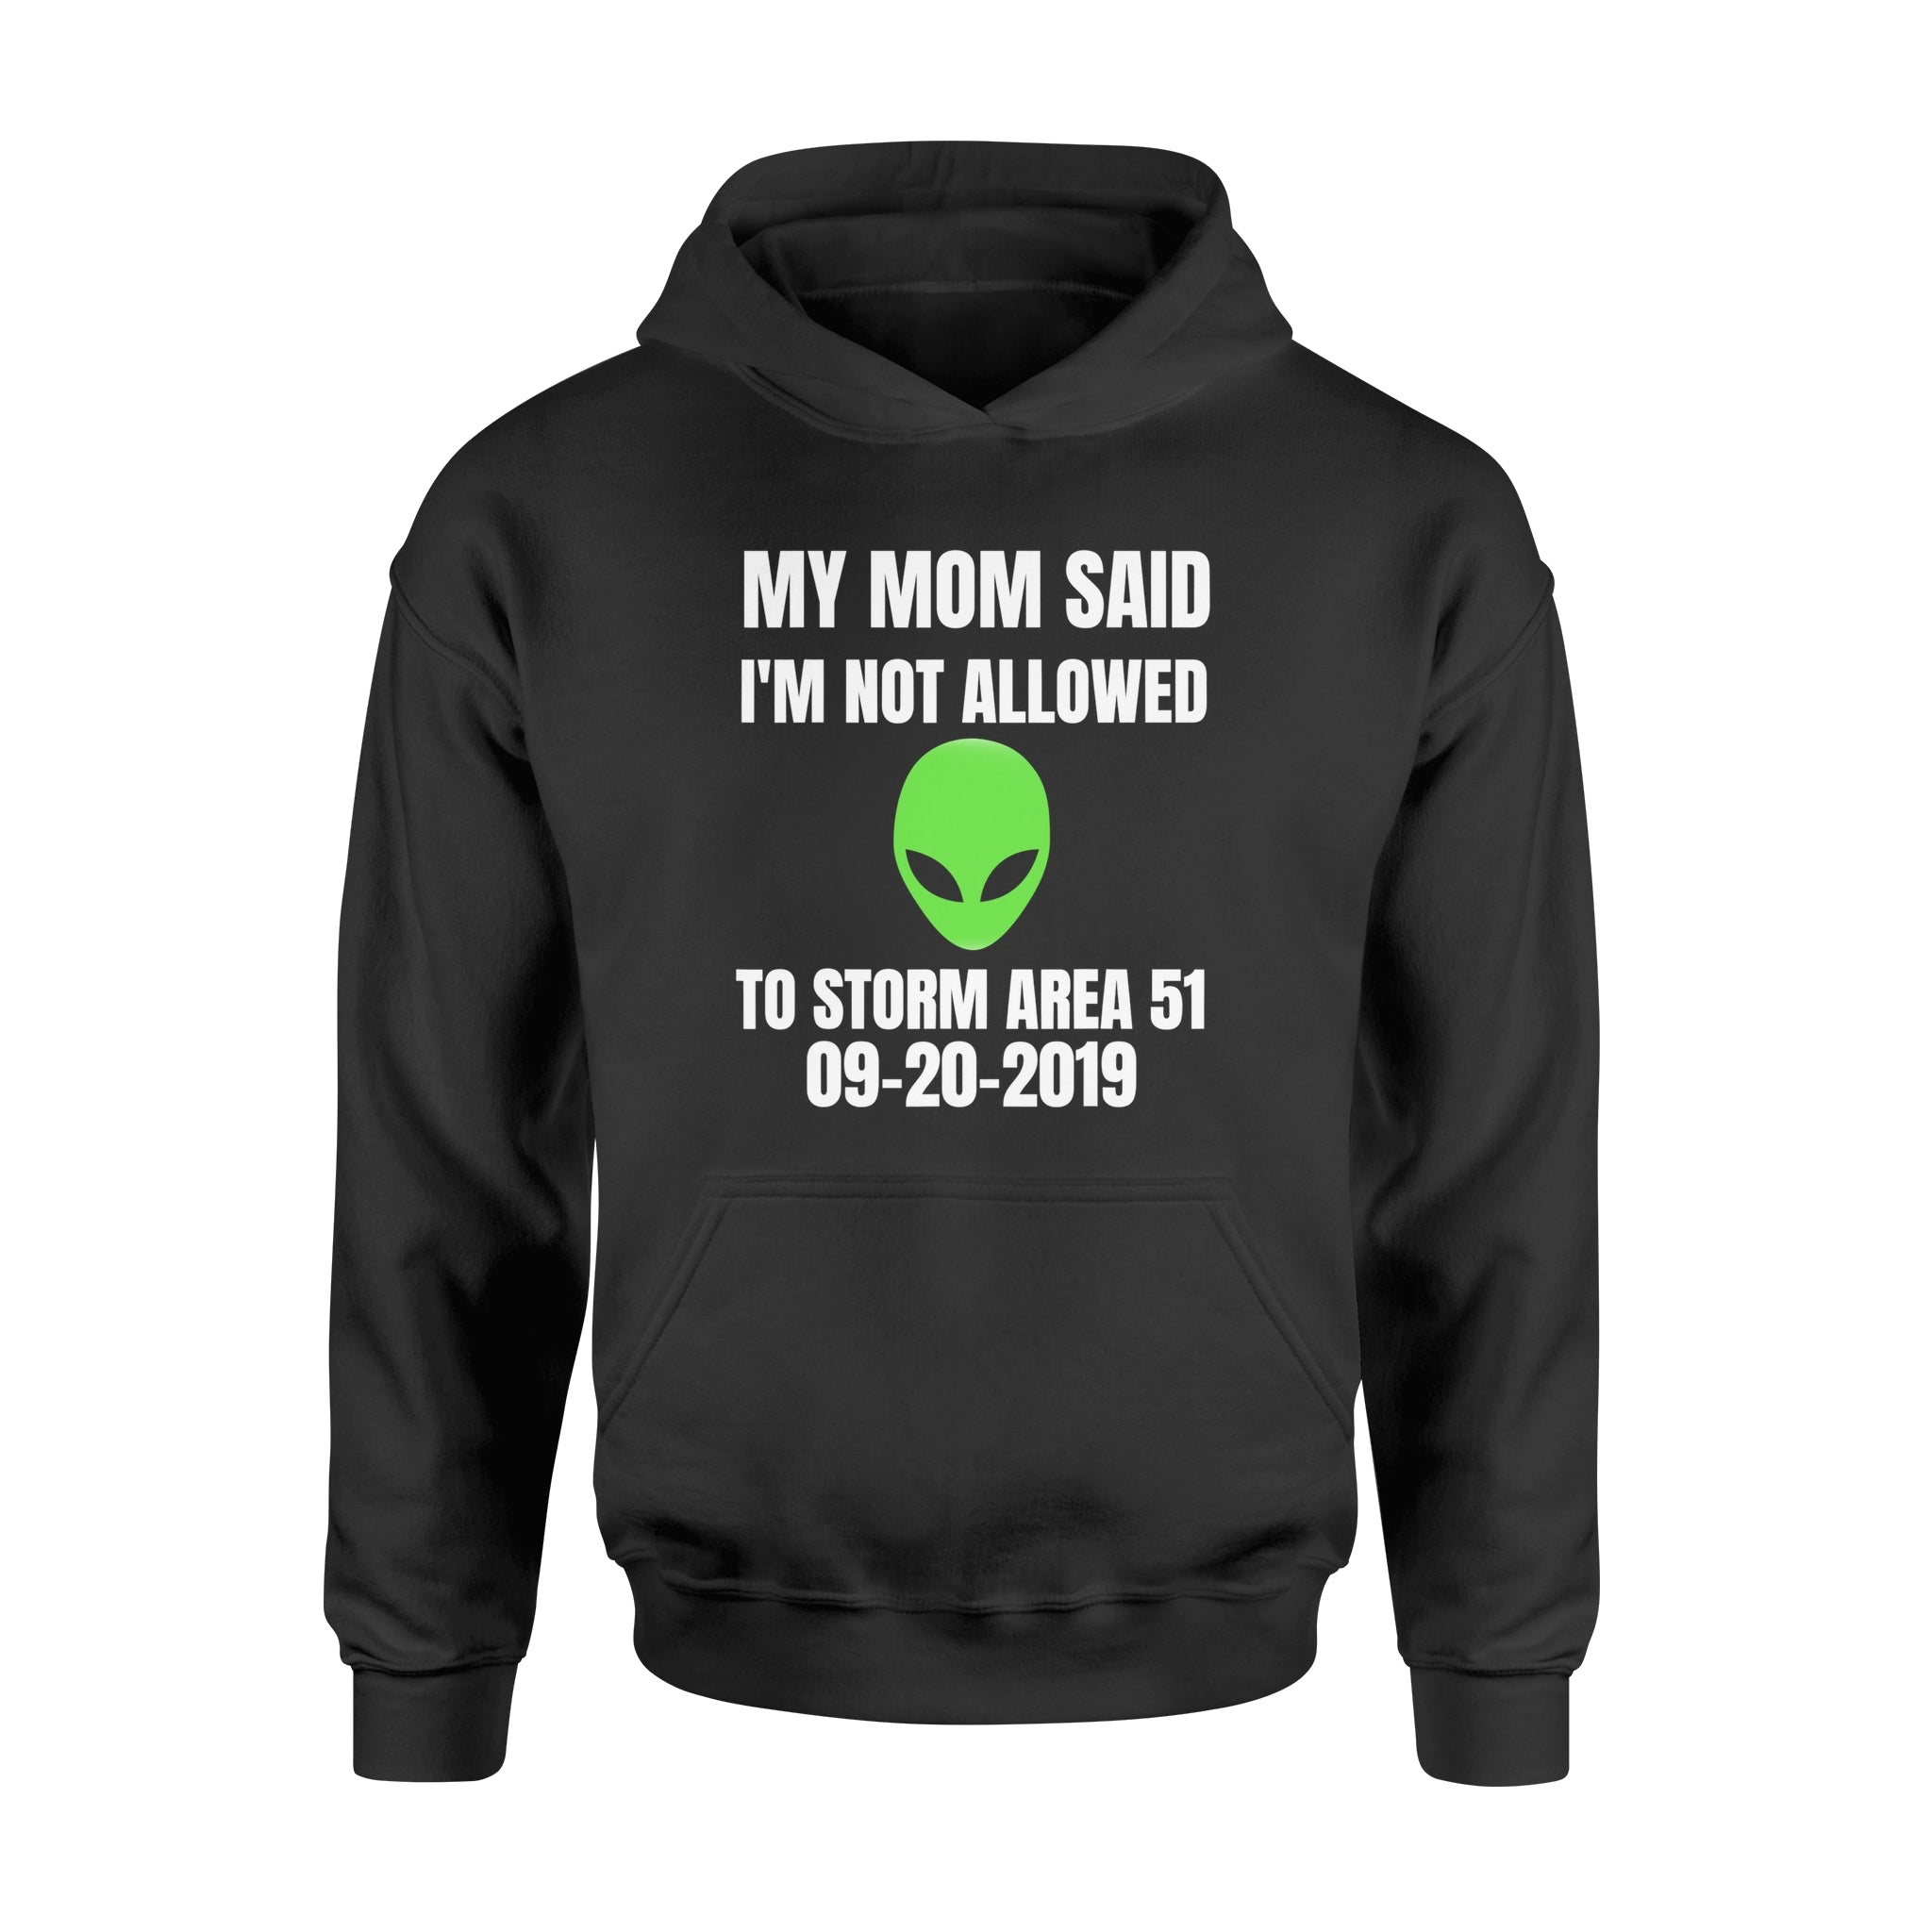 My Mom Said I'm not allowed to storm area 51 kids funny T-Shirt – Standard Hoodie